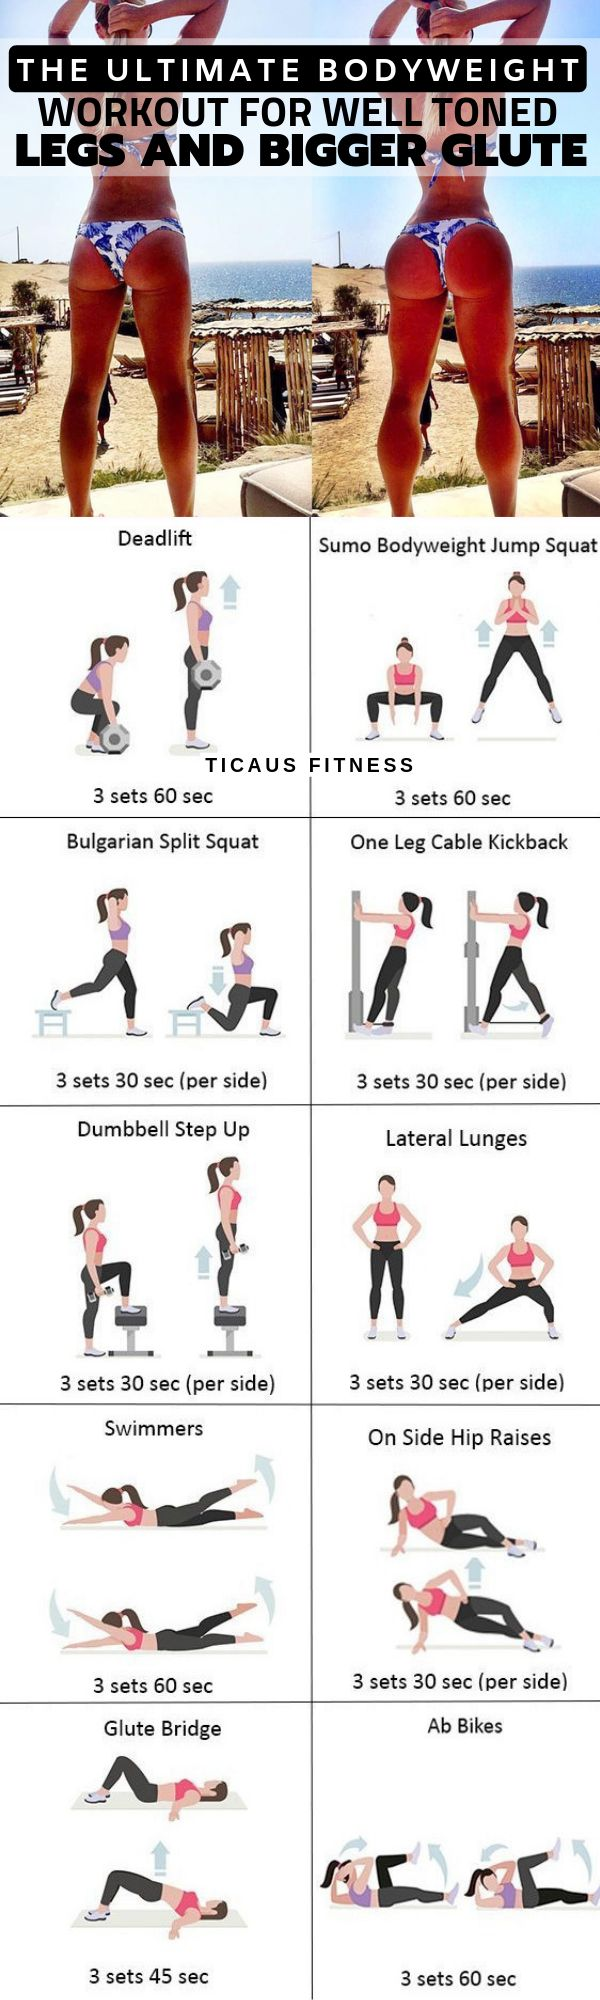 The Ultimate Bodyweight Workout for Rounder Glutes & Well Toned Legs